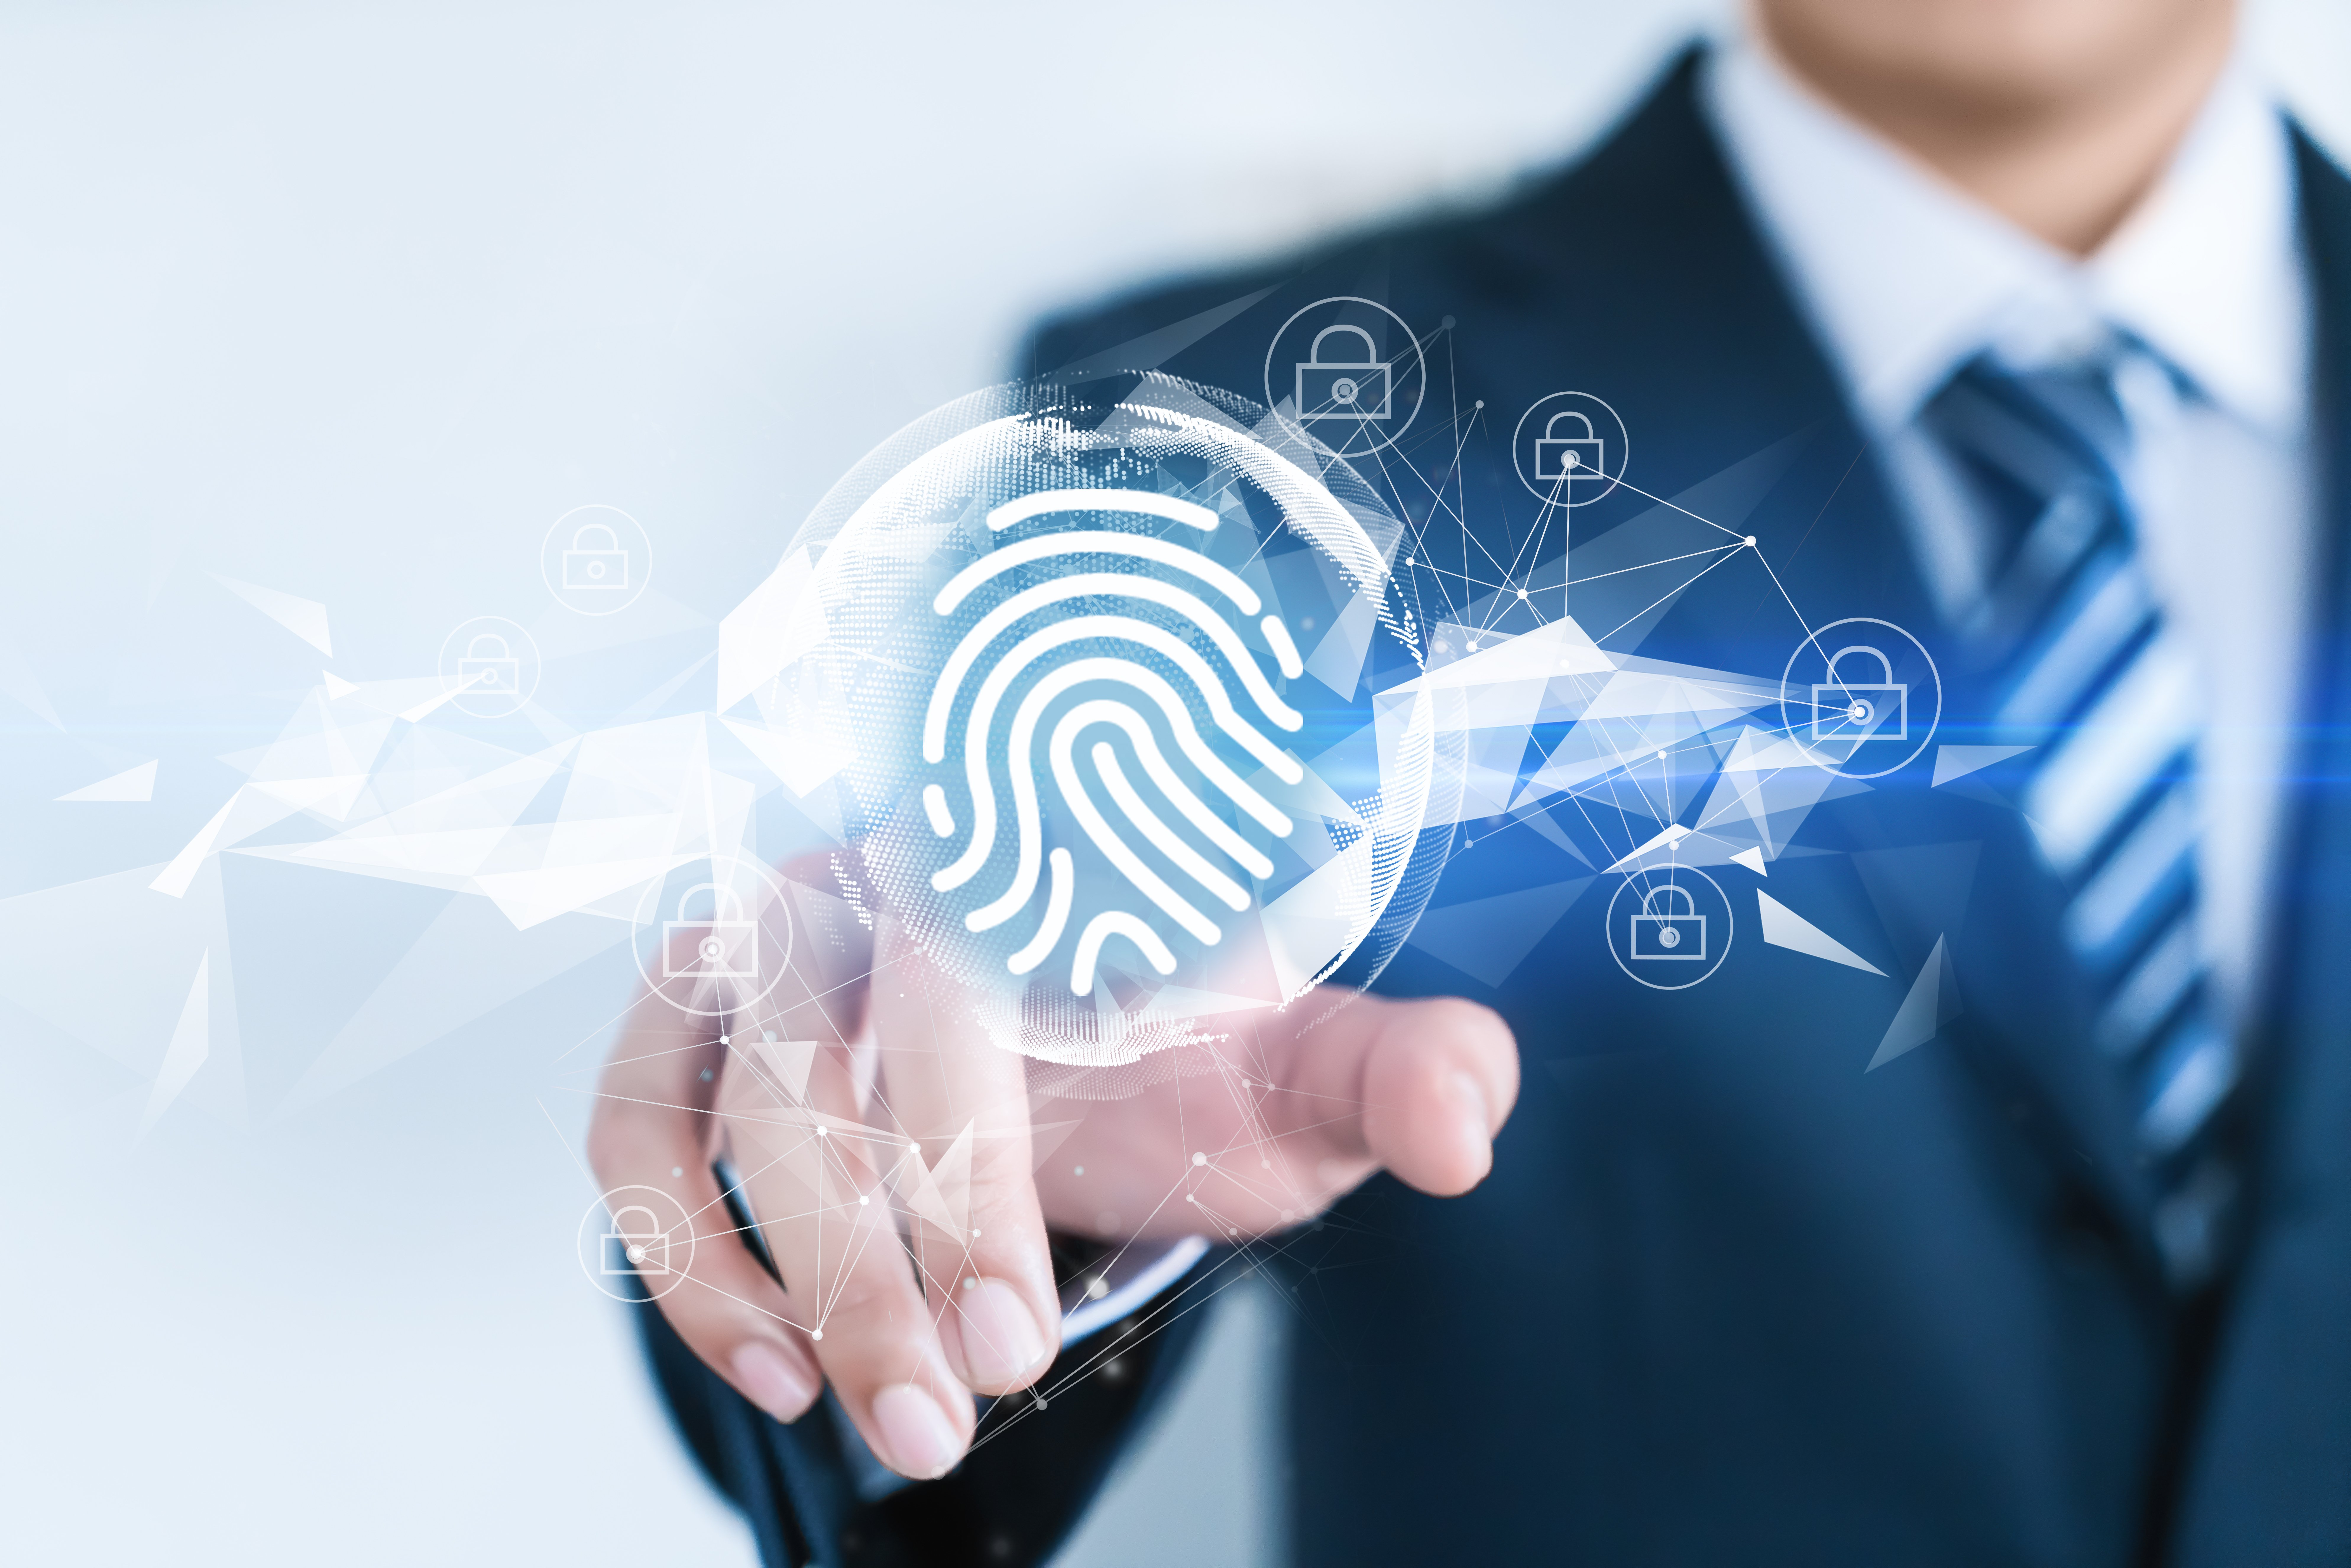 Man pressing a fingerprint button | Photo: Shutterstock